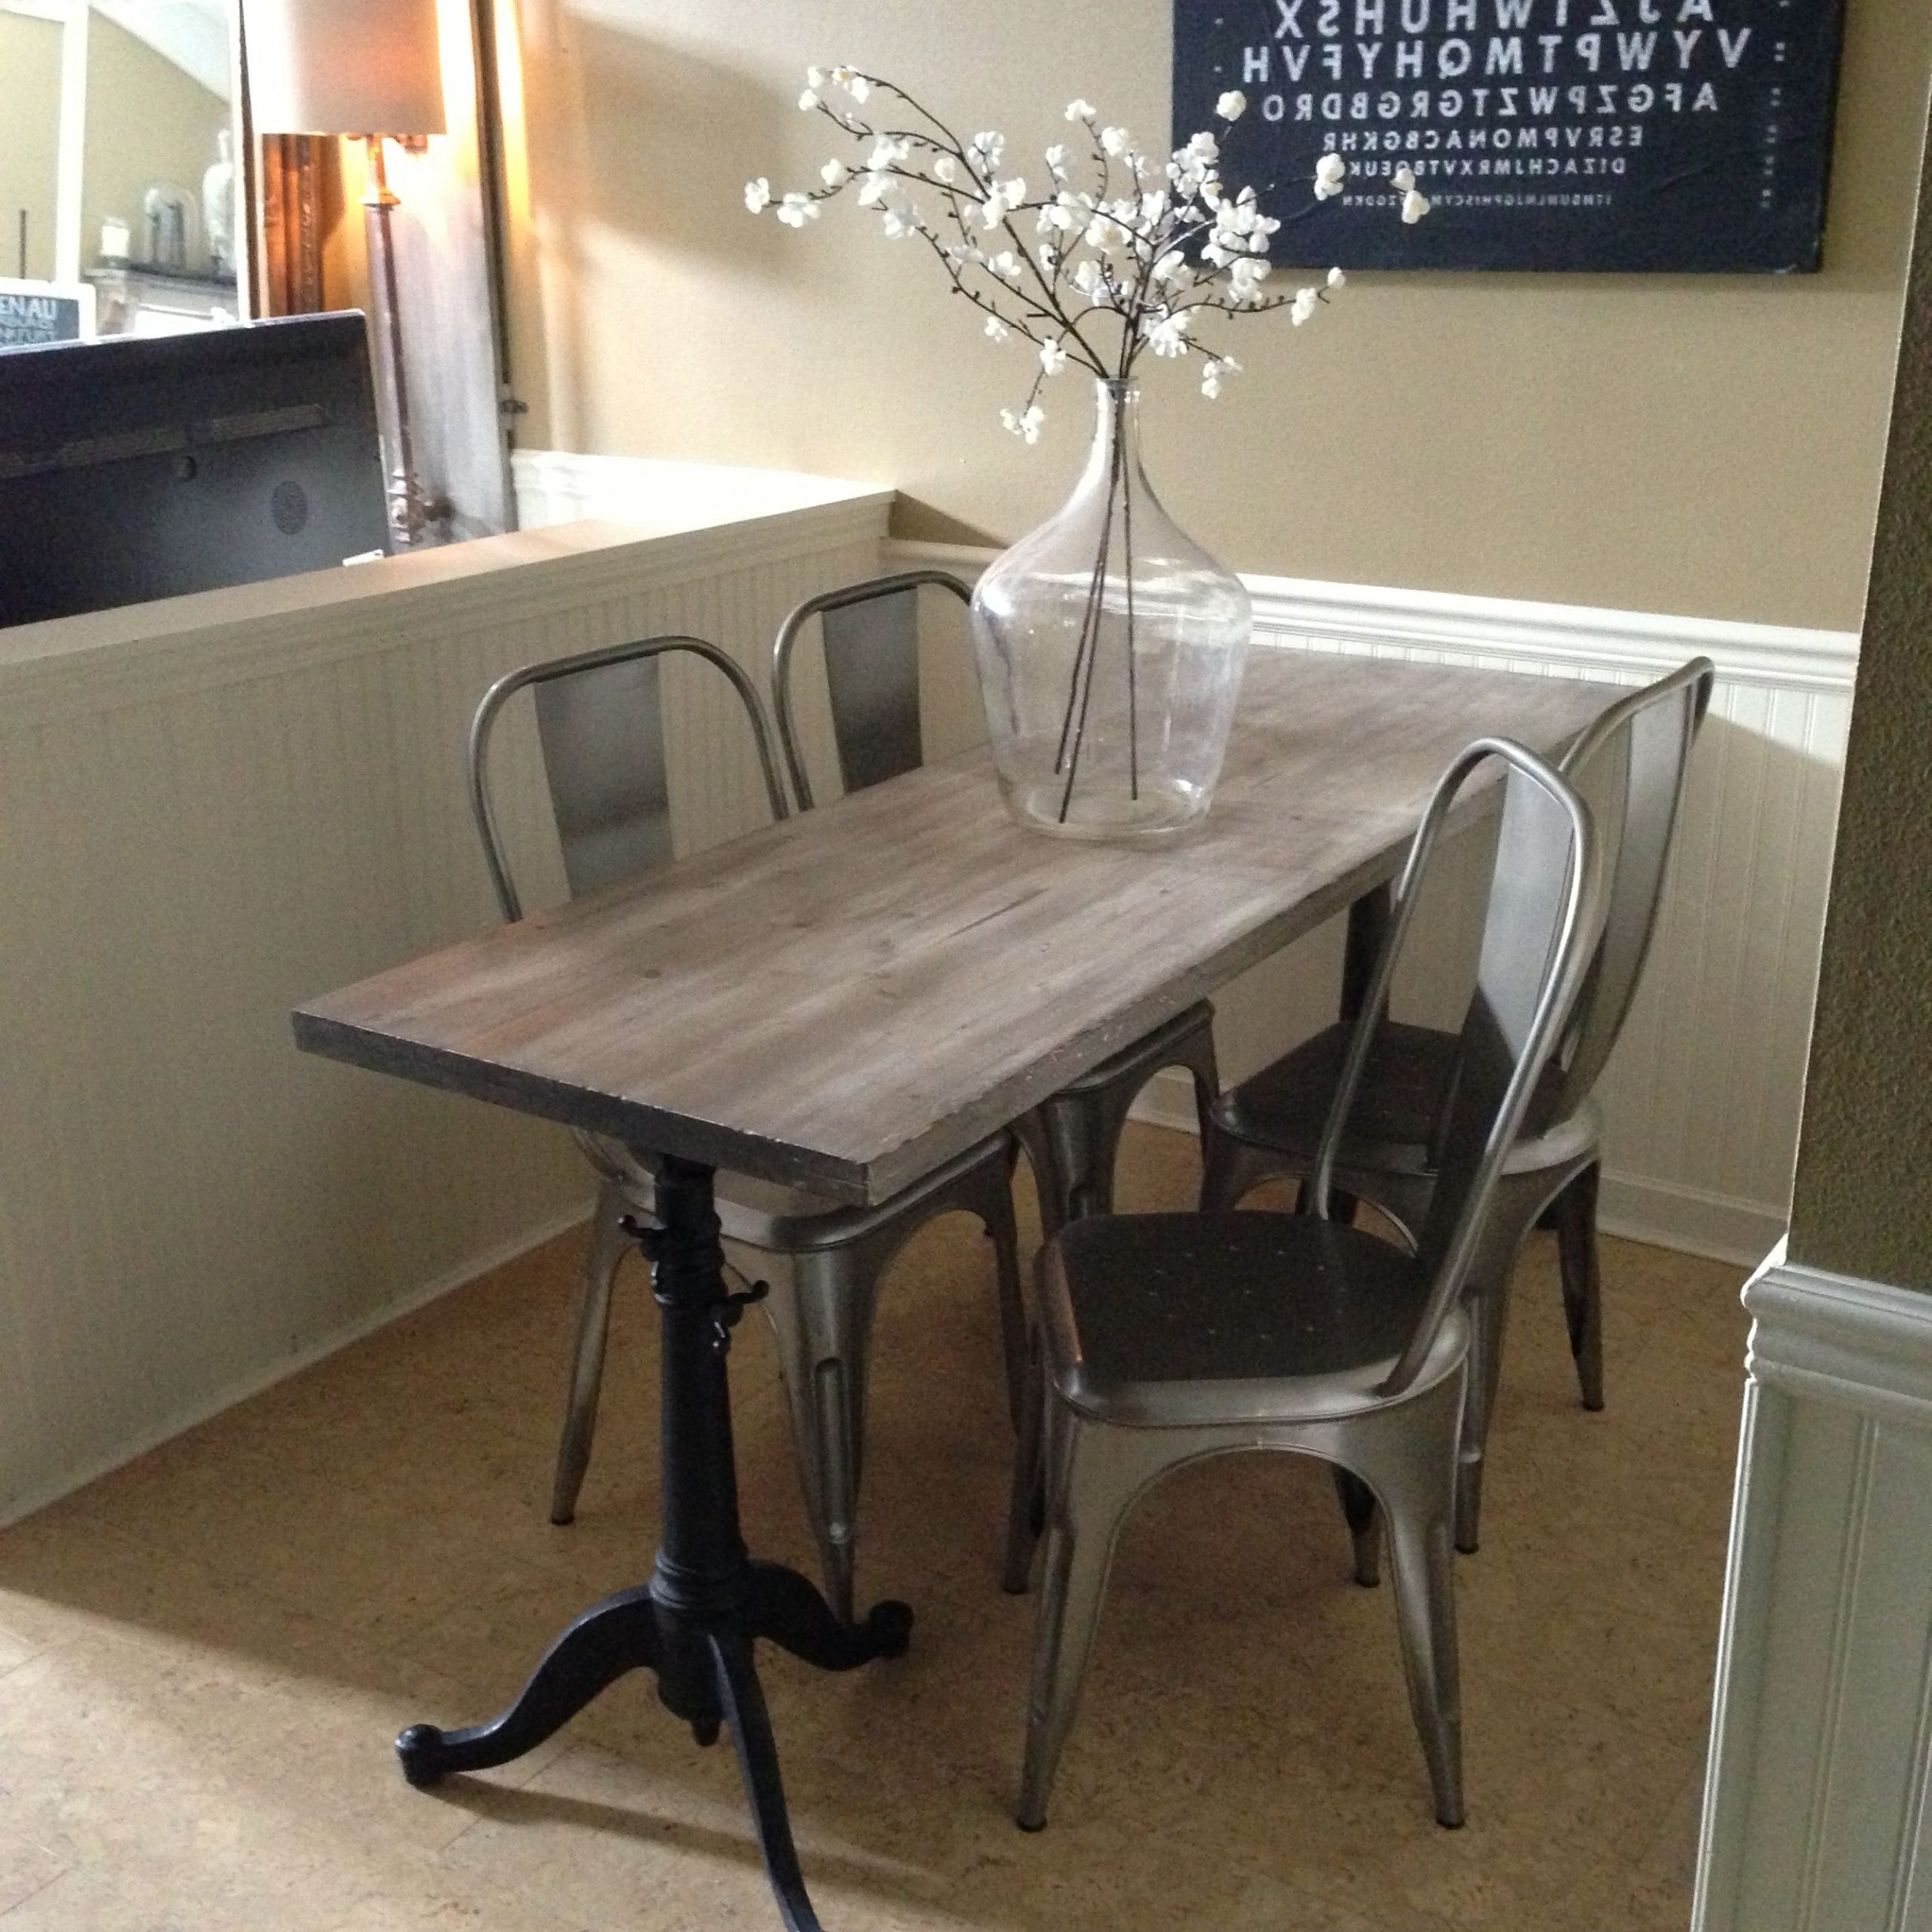 Preferred Narrow Dining Table For Narrow Space (View 13 of 30)